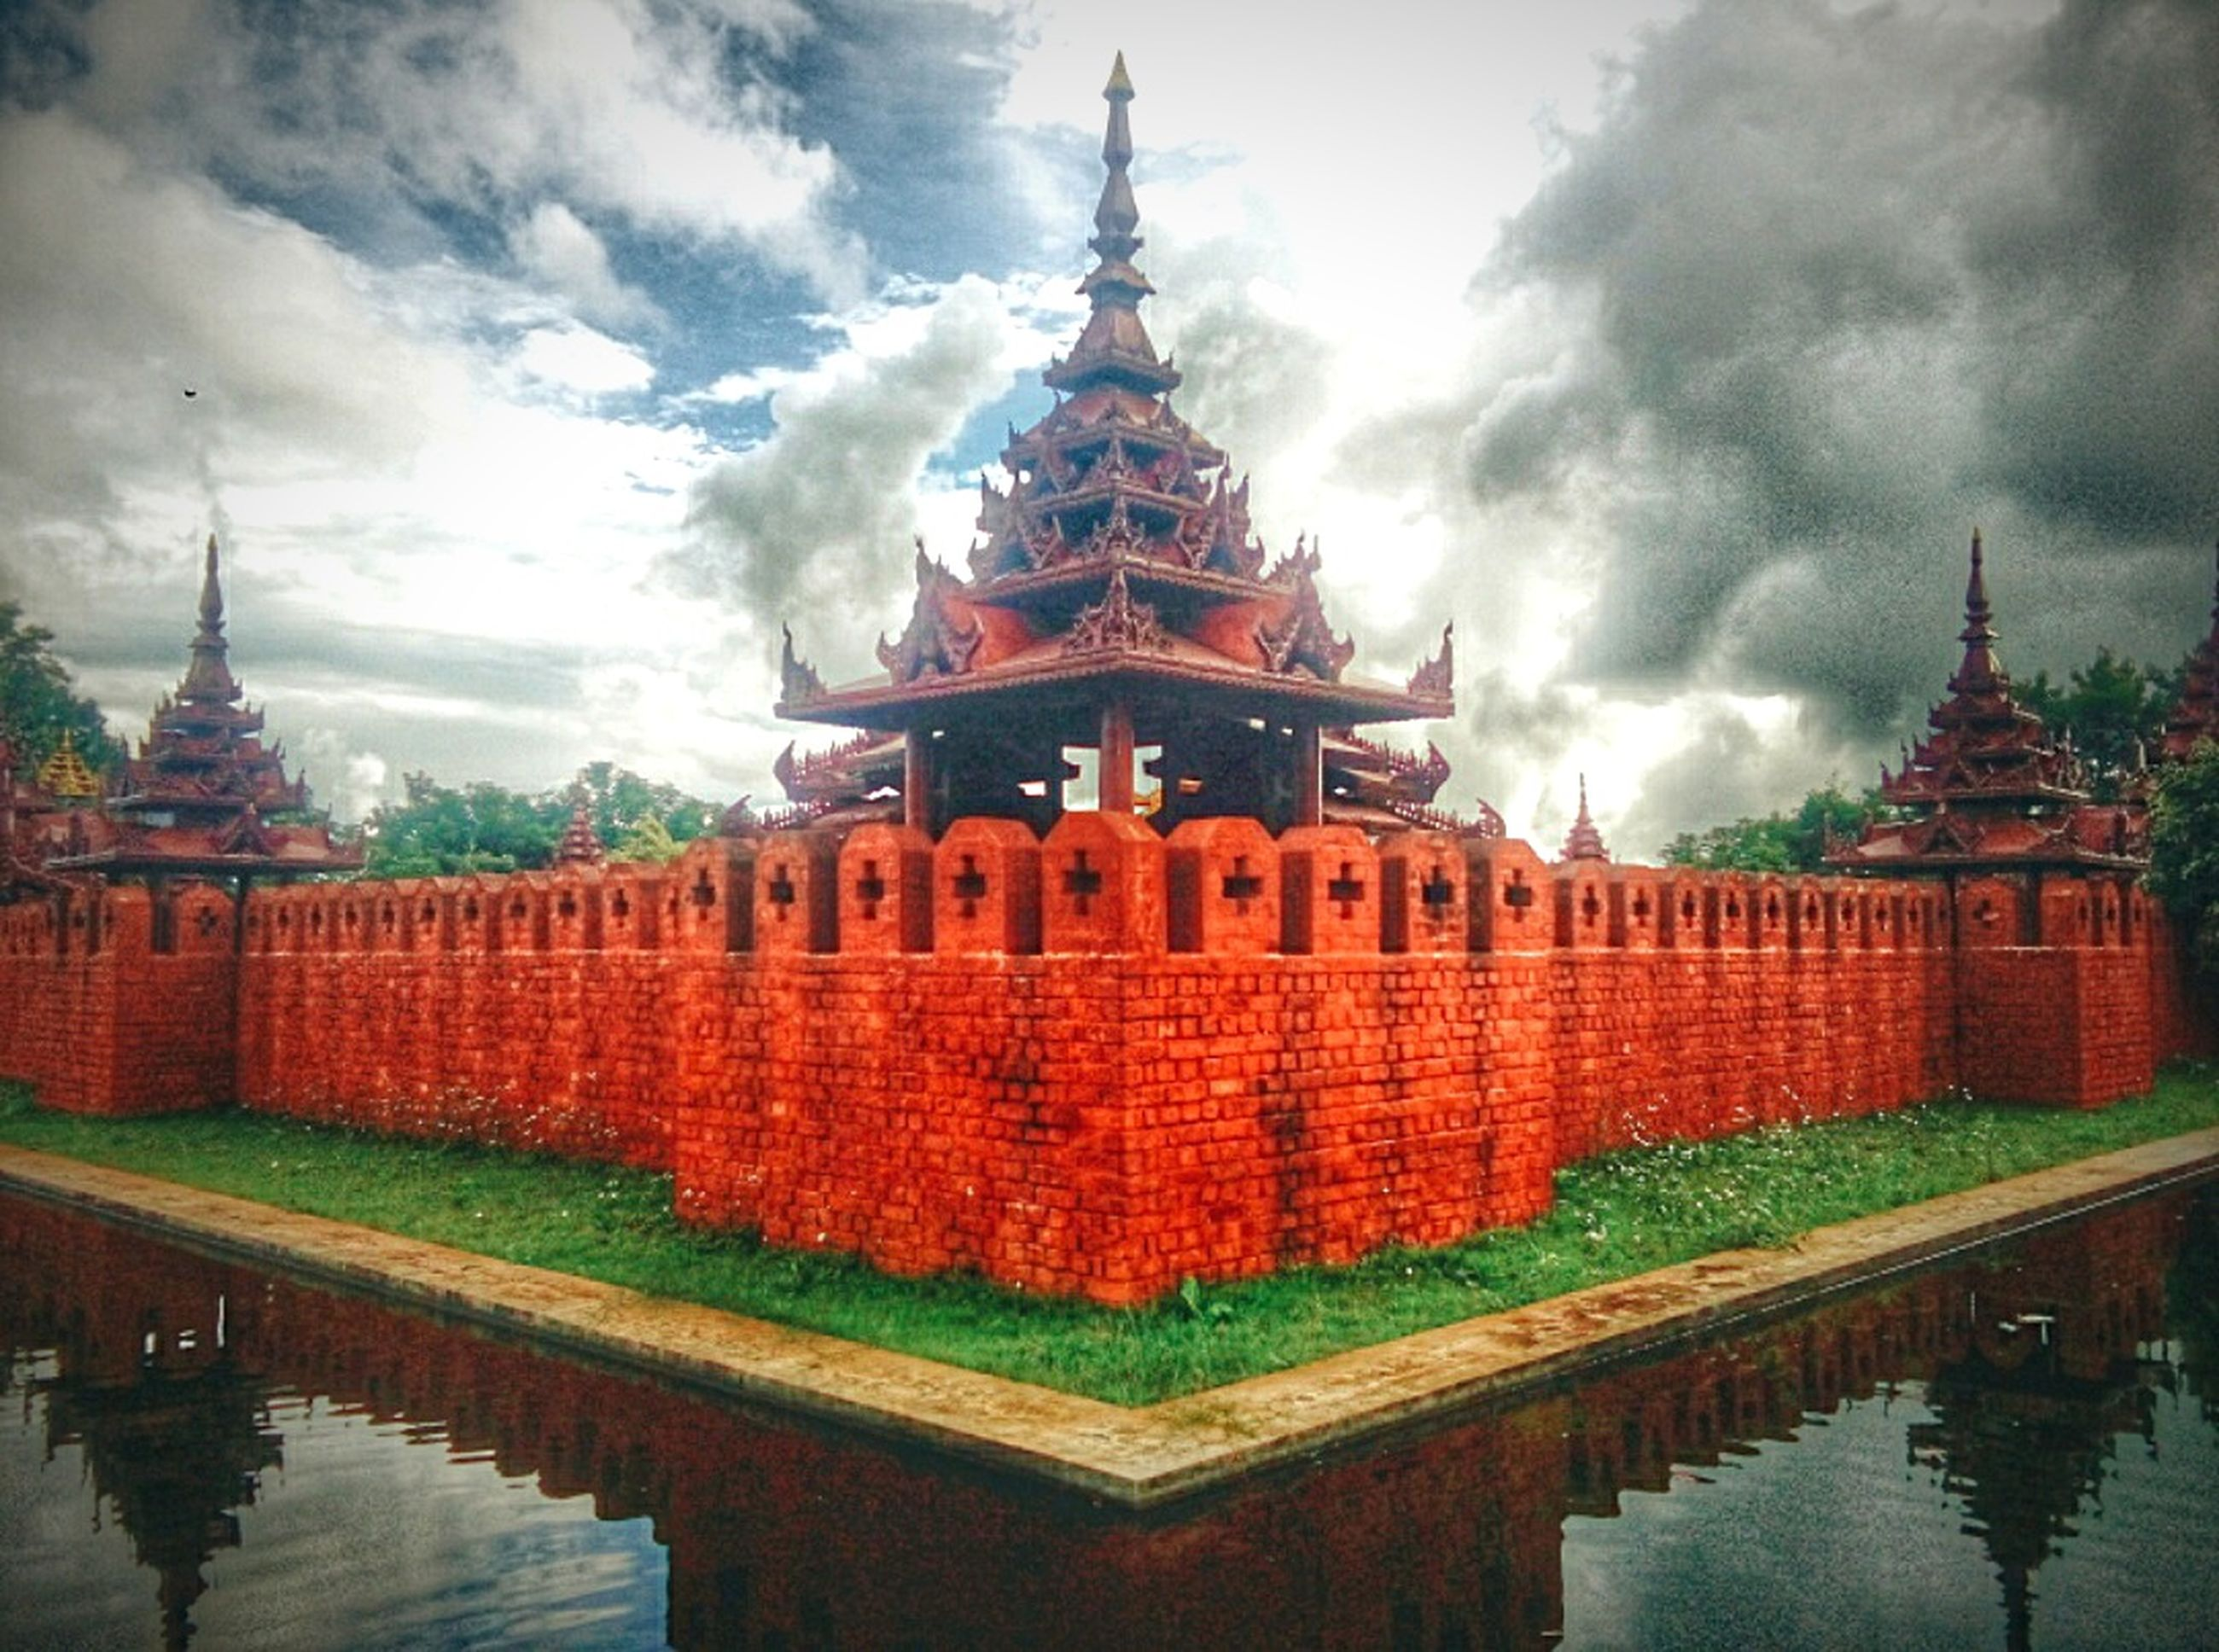 place of worship, religion, spirituality, architecture, built structure, temple - building, building exterior, famous place, sky, travel destinations, tourism, travel, cloud - sky, temple, cathedral, gold colored, international landmark, cloudy